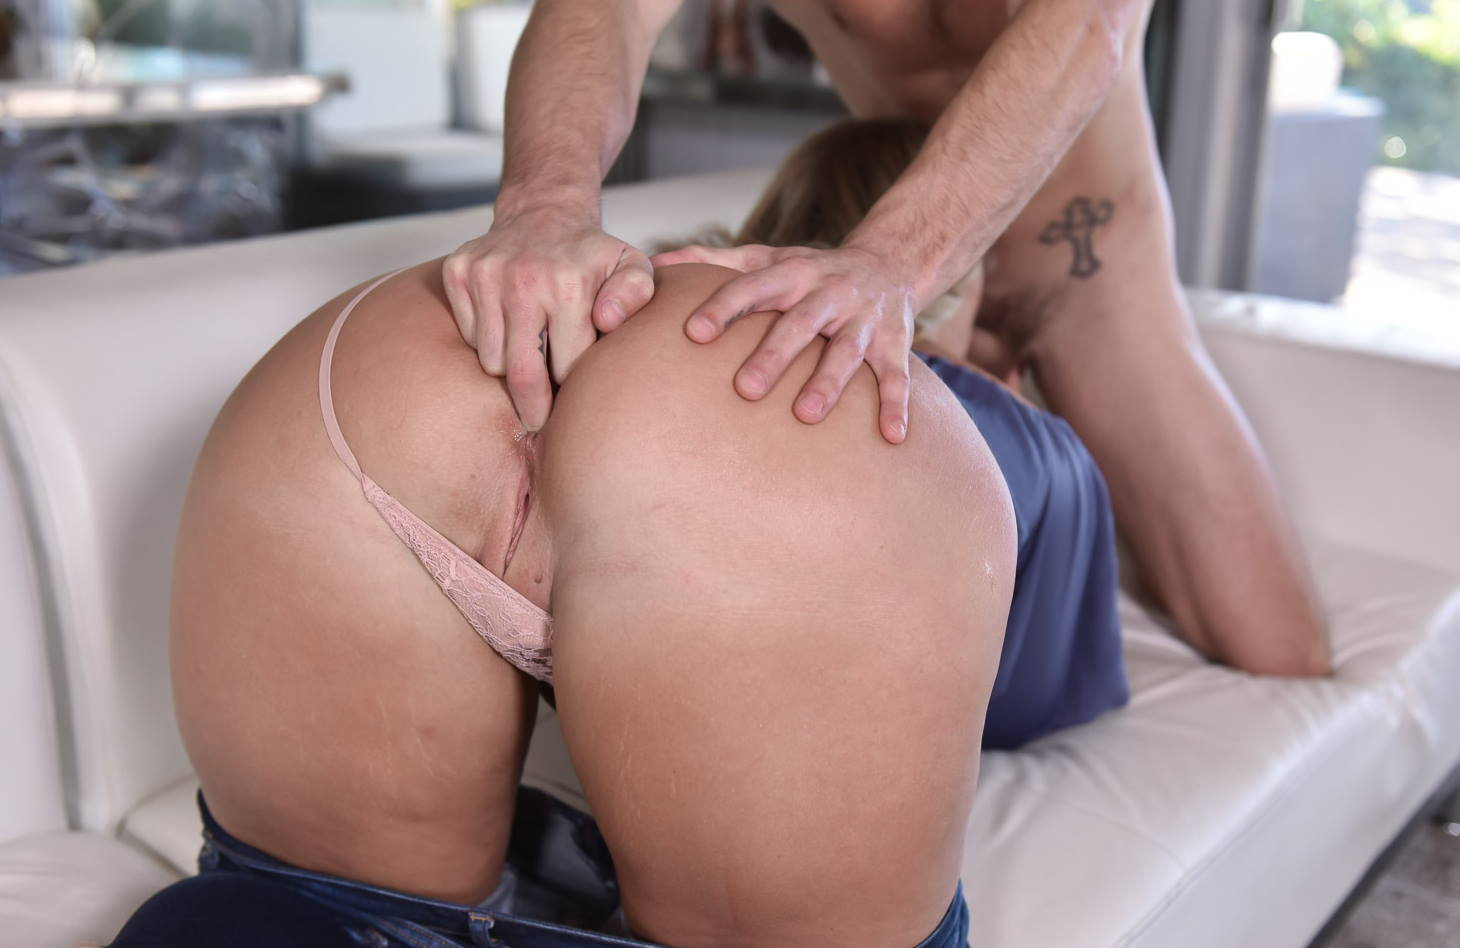 Lets milk this cock while husband is out